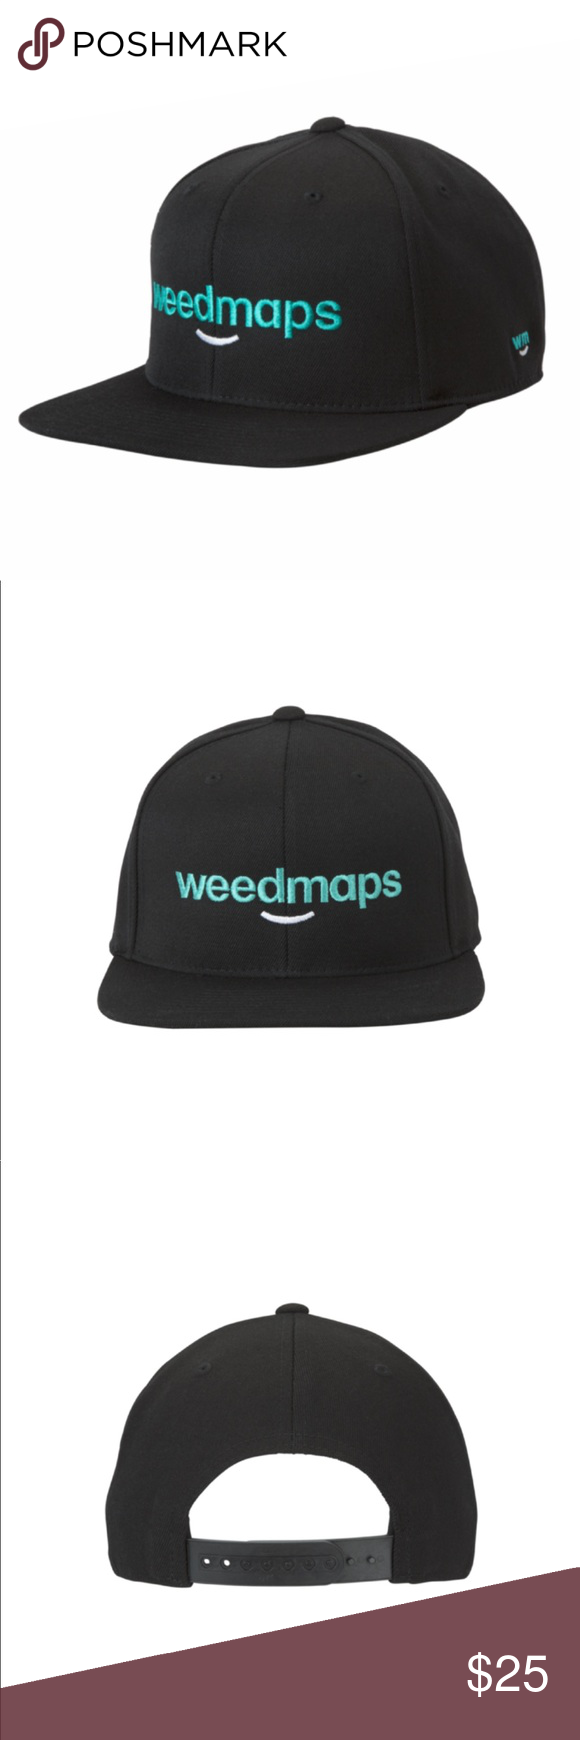 2 For 25 Weedmaps Snapback Hat 2 For 25 Any Two 15 Items Mix And Match Any Two 15 Items Message Me Before Snapback Hats Snapback Sweatband